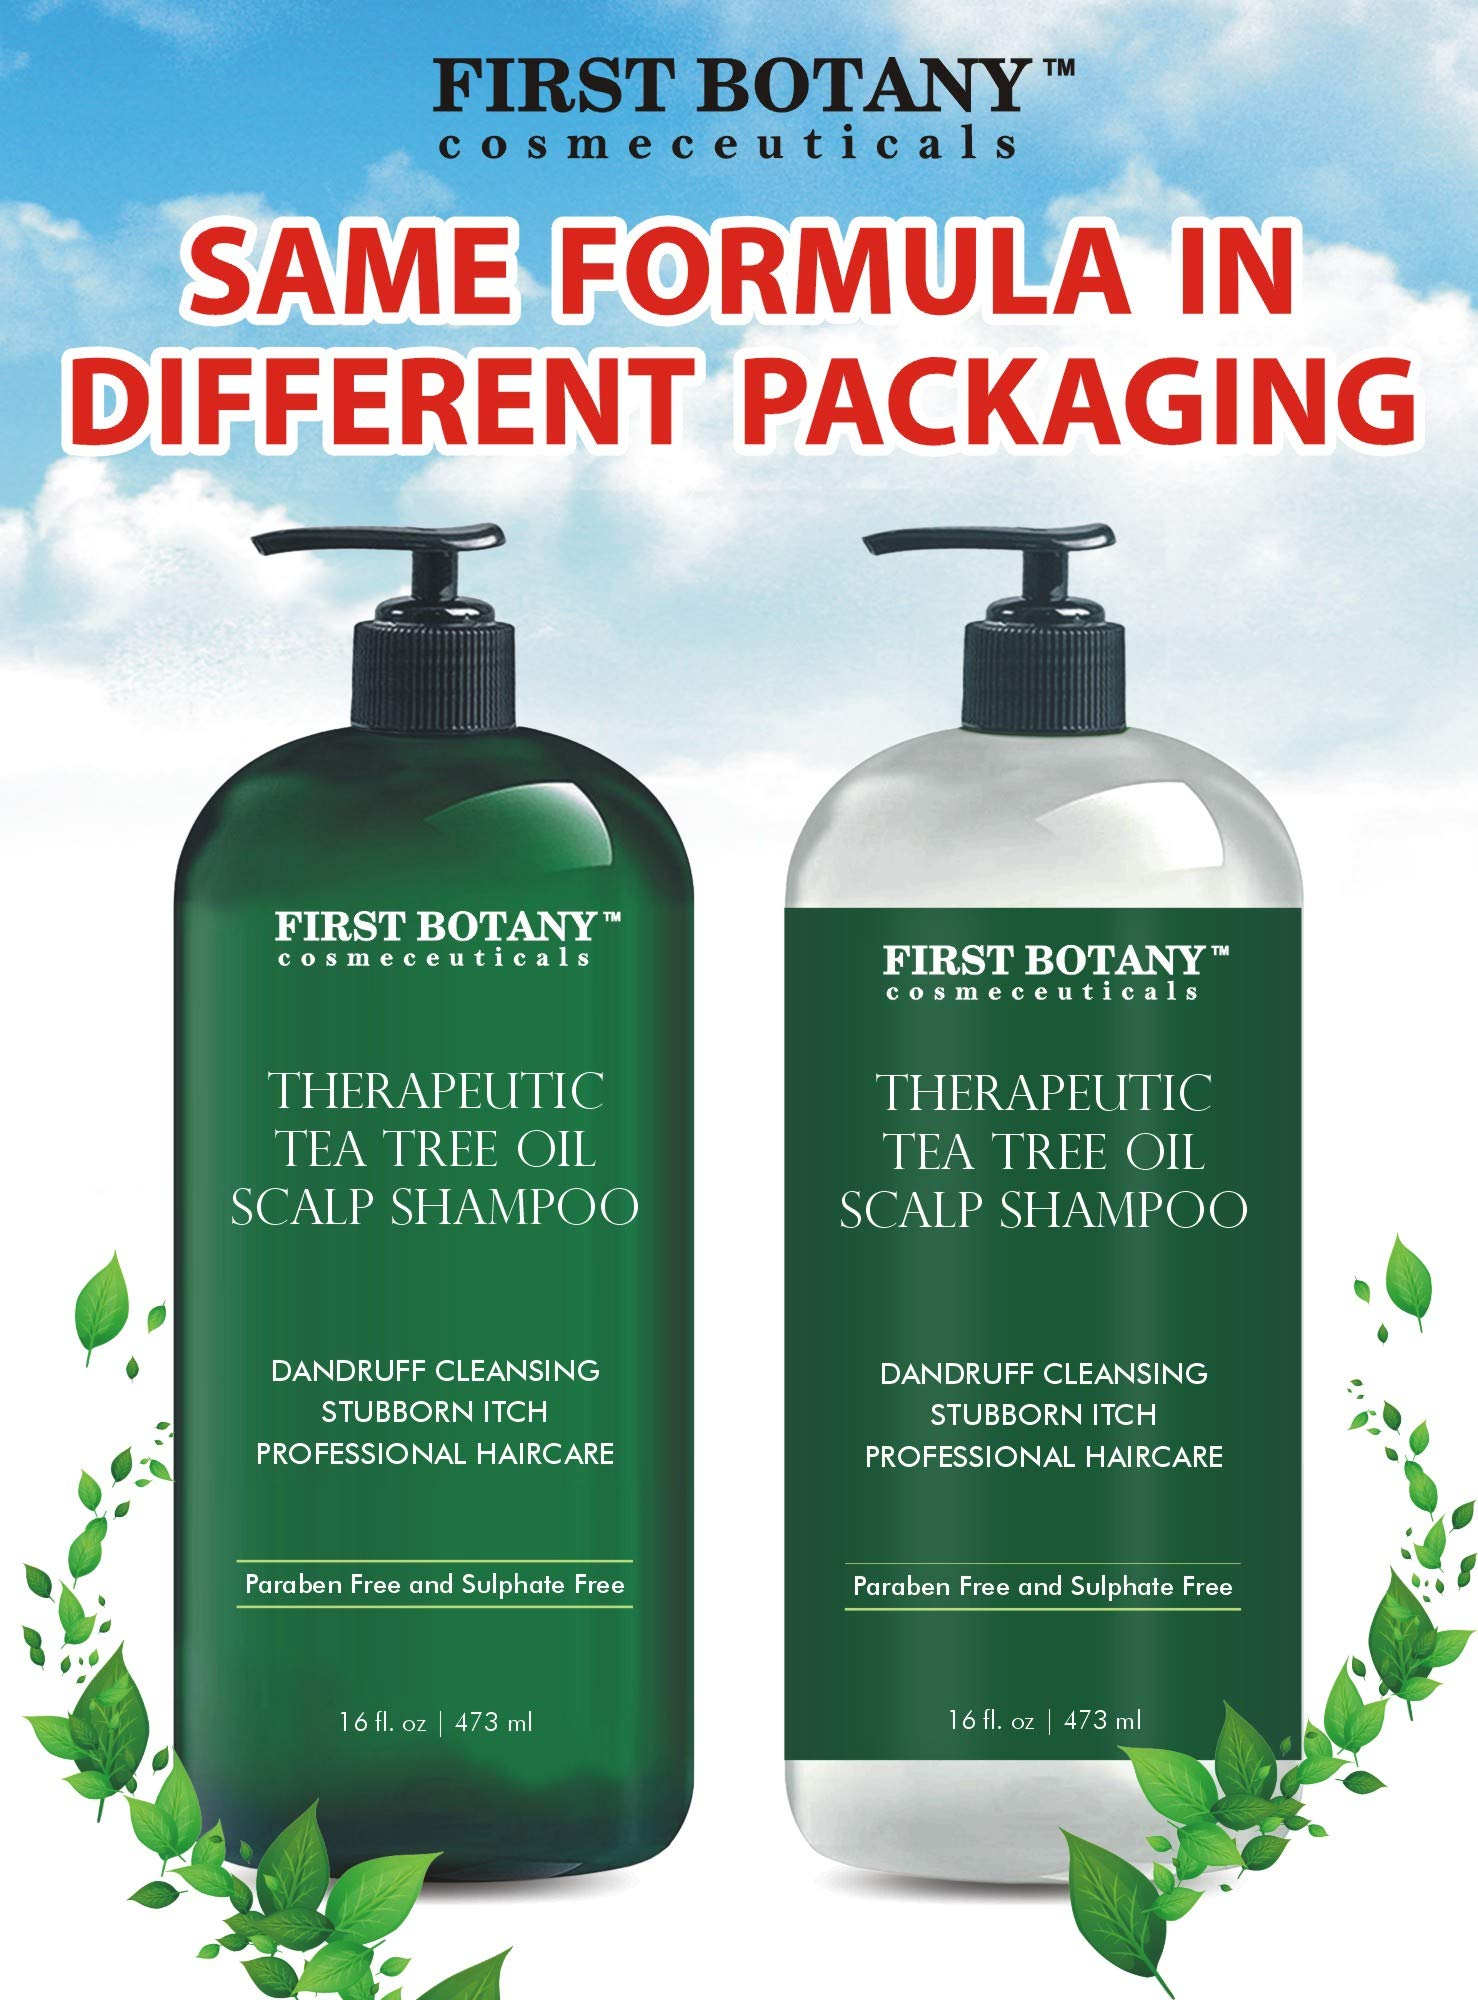 Tea Tree Oil Shampoo 16 fl oz - Anti Dandruff Shampoo Natural Essential Oil For Dry Itchy & Flaky Scalp - Sulfate Free, Anti-fungal, Anti-Bacterial Cleanser - Prevents Head Lice & Thinning by First Botany Cosmeceuticals